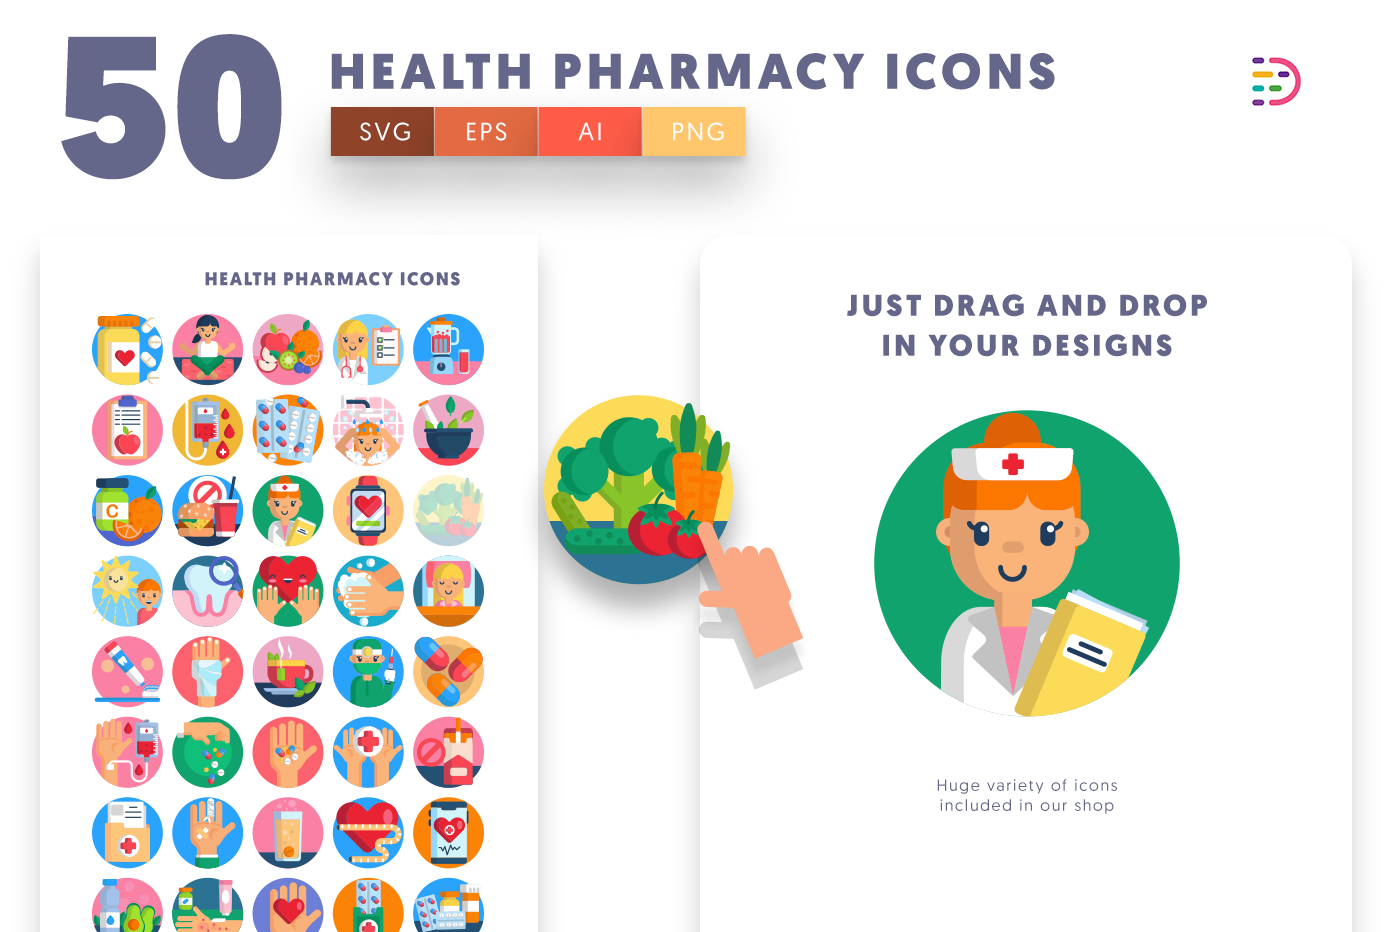 50 Health Pharmacy Icons with colored backgrounds